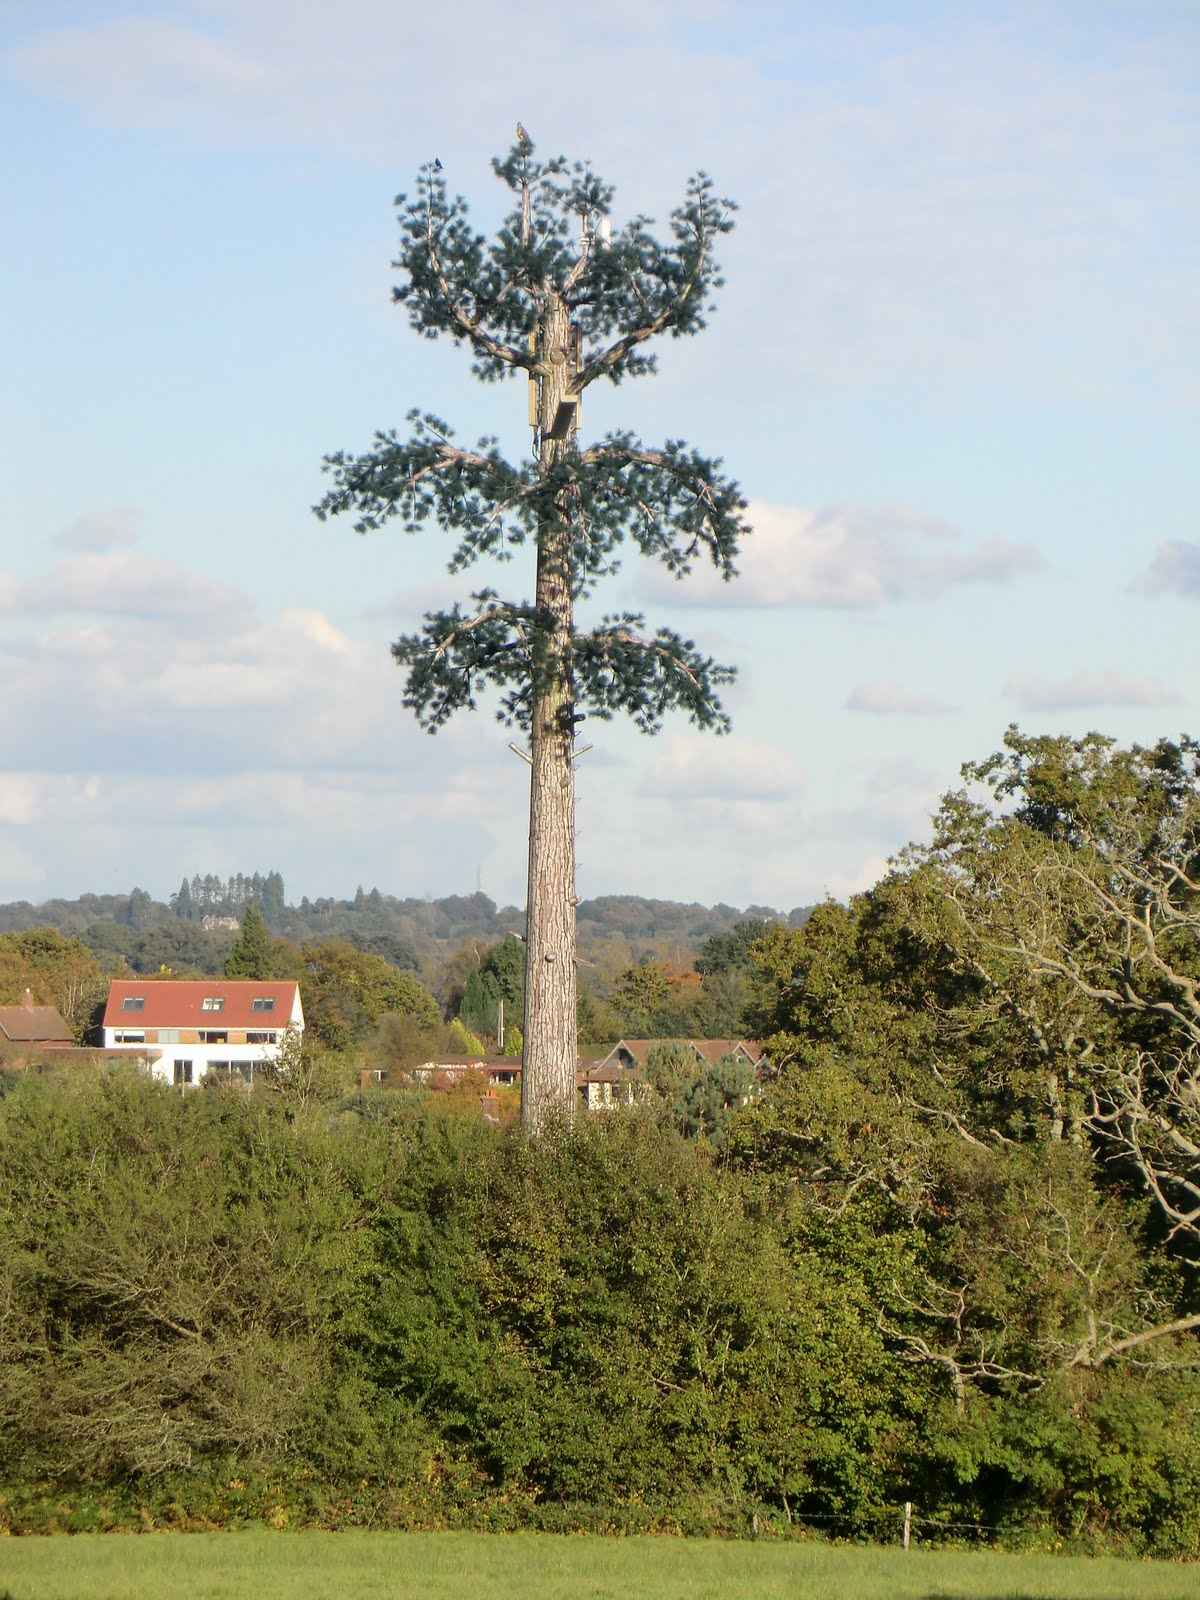 CIMG4504 Thinly-disguised phone mast, Balcombe